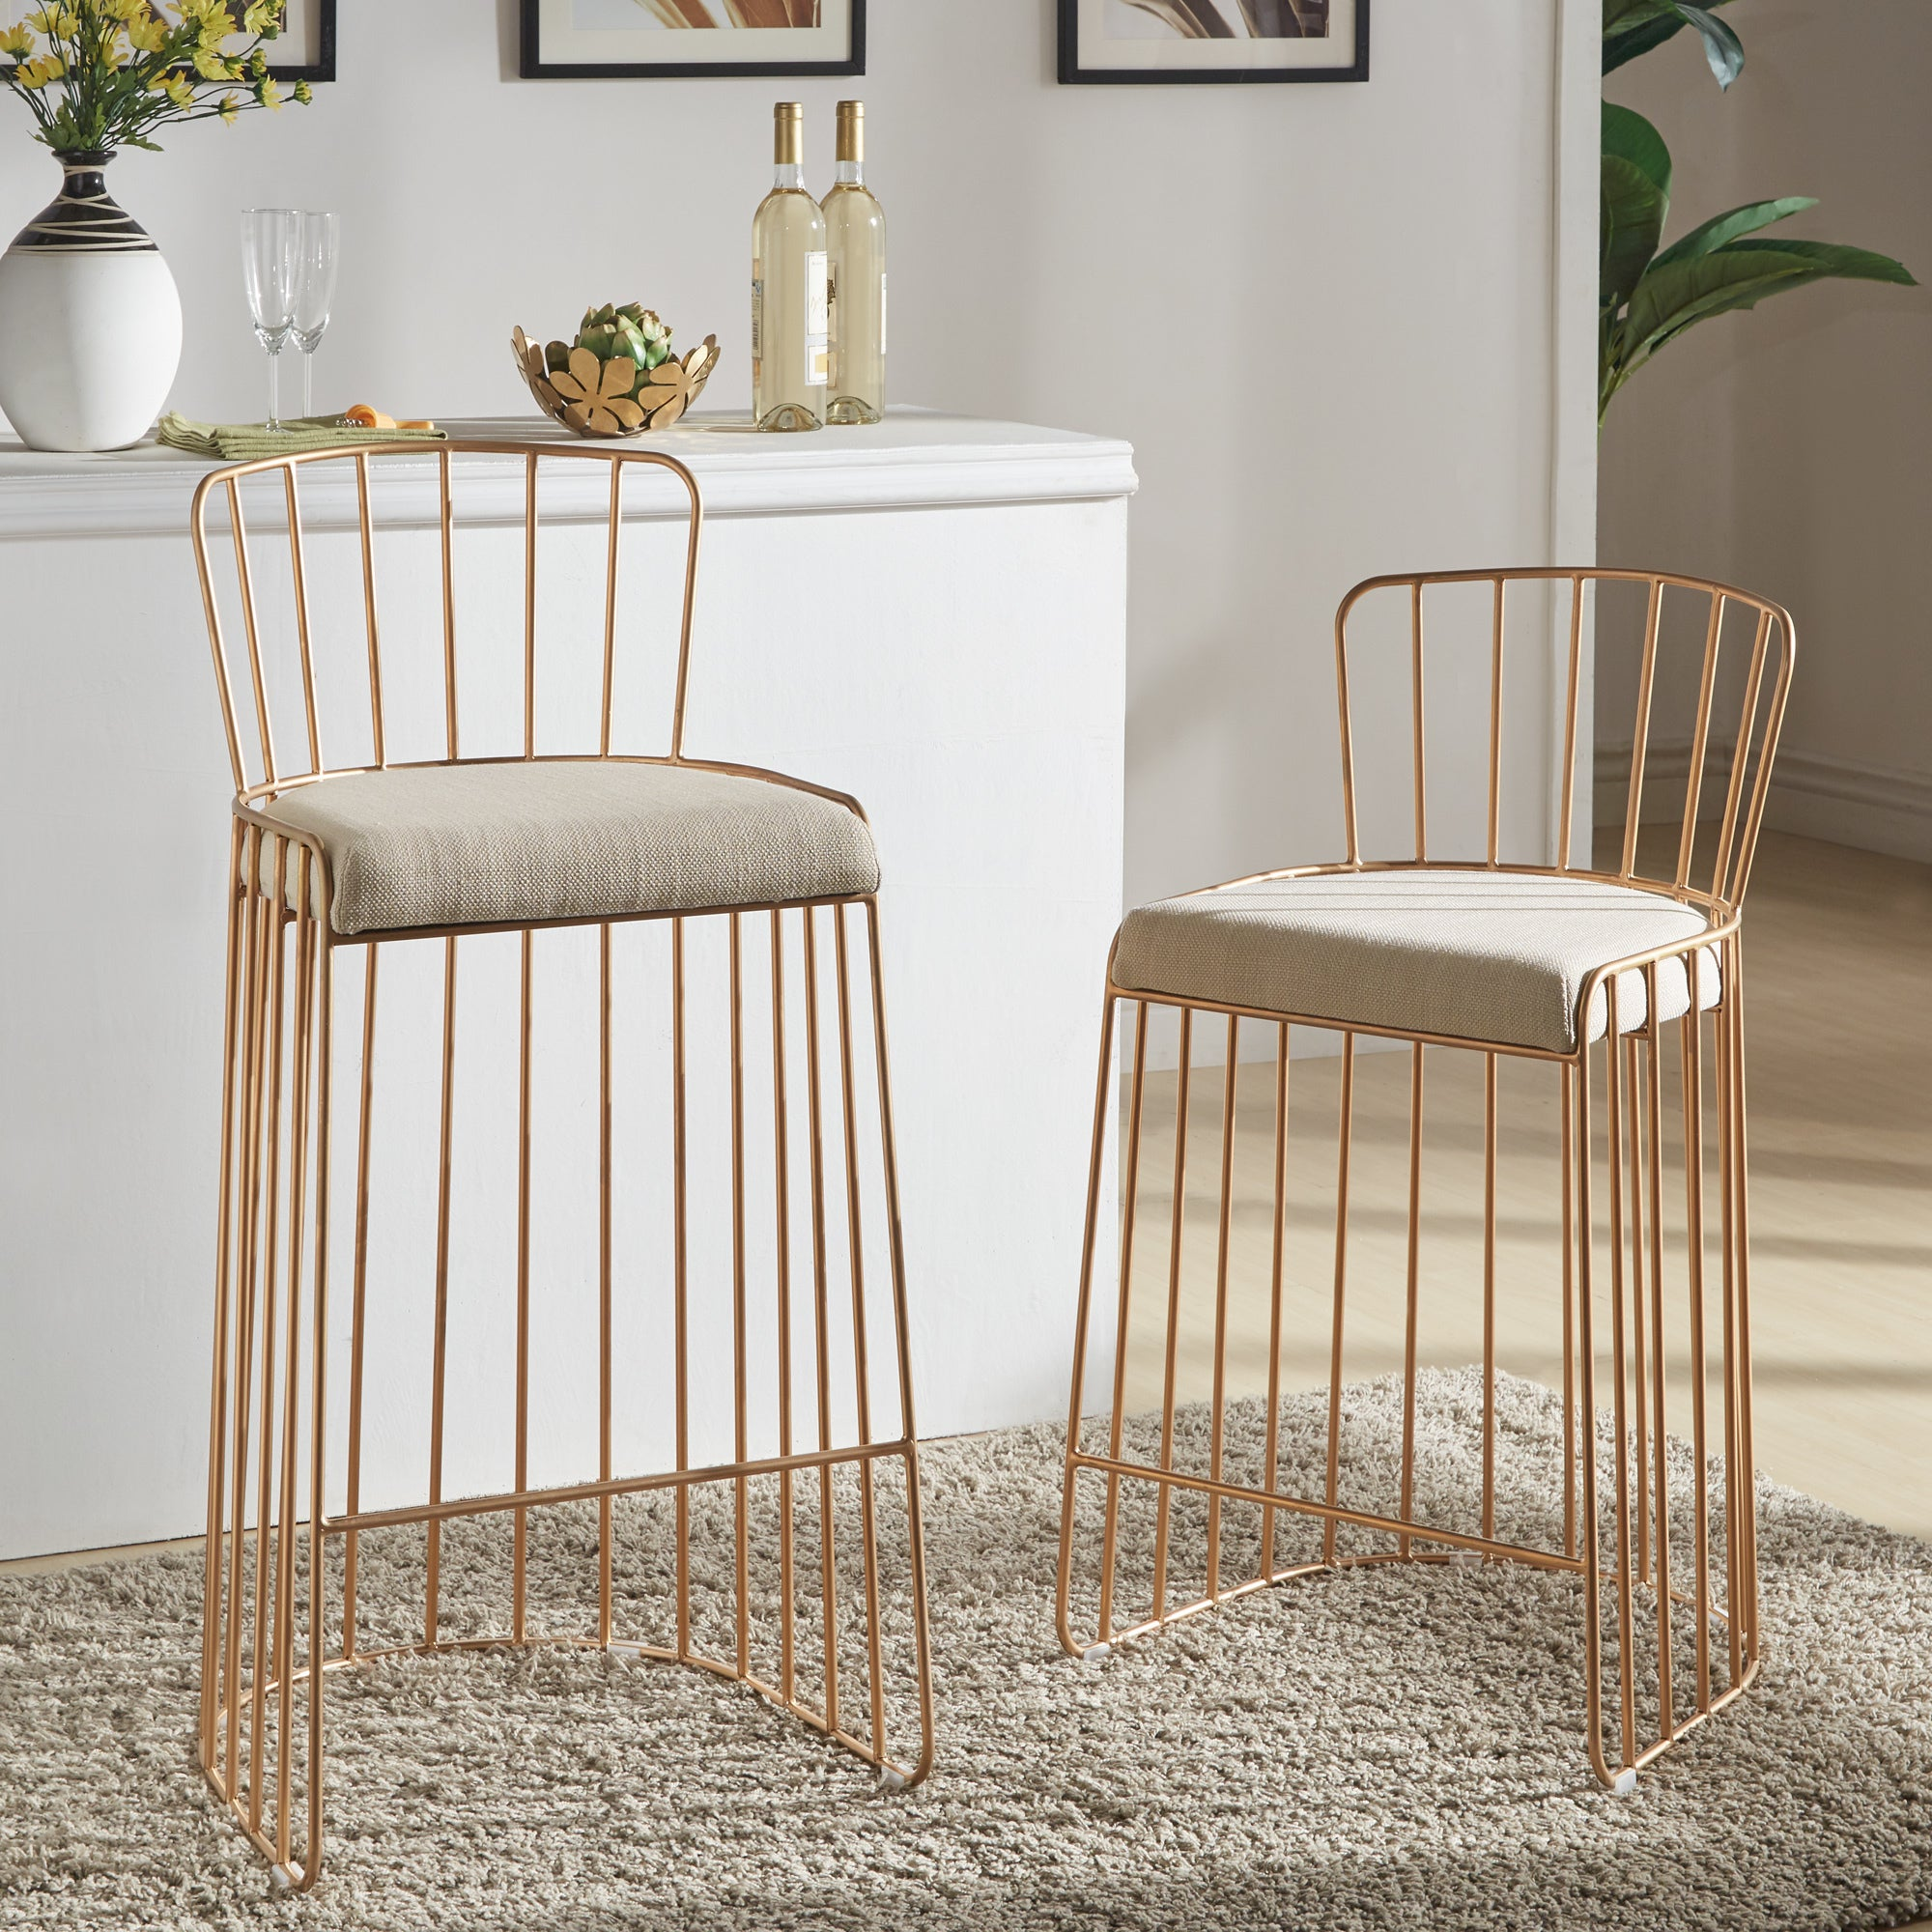 Matisha upholstered gold finish metal barstool by inspire q bold